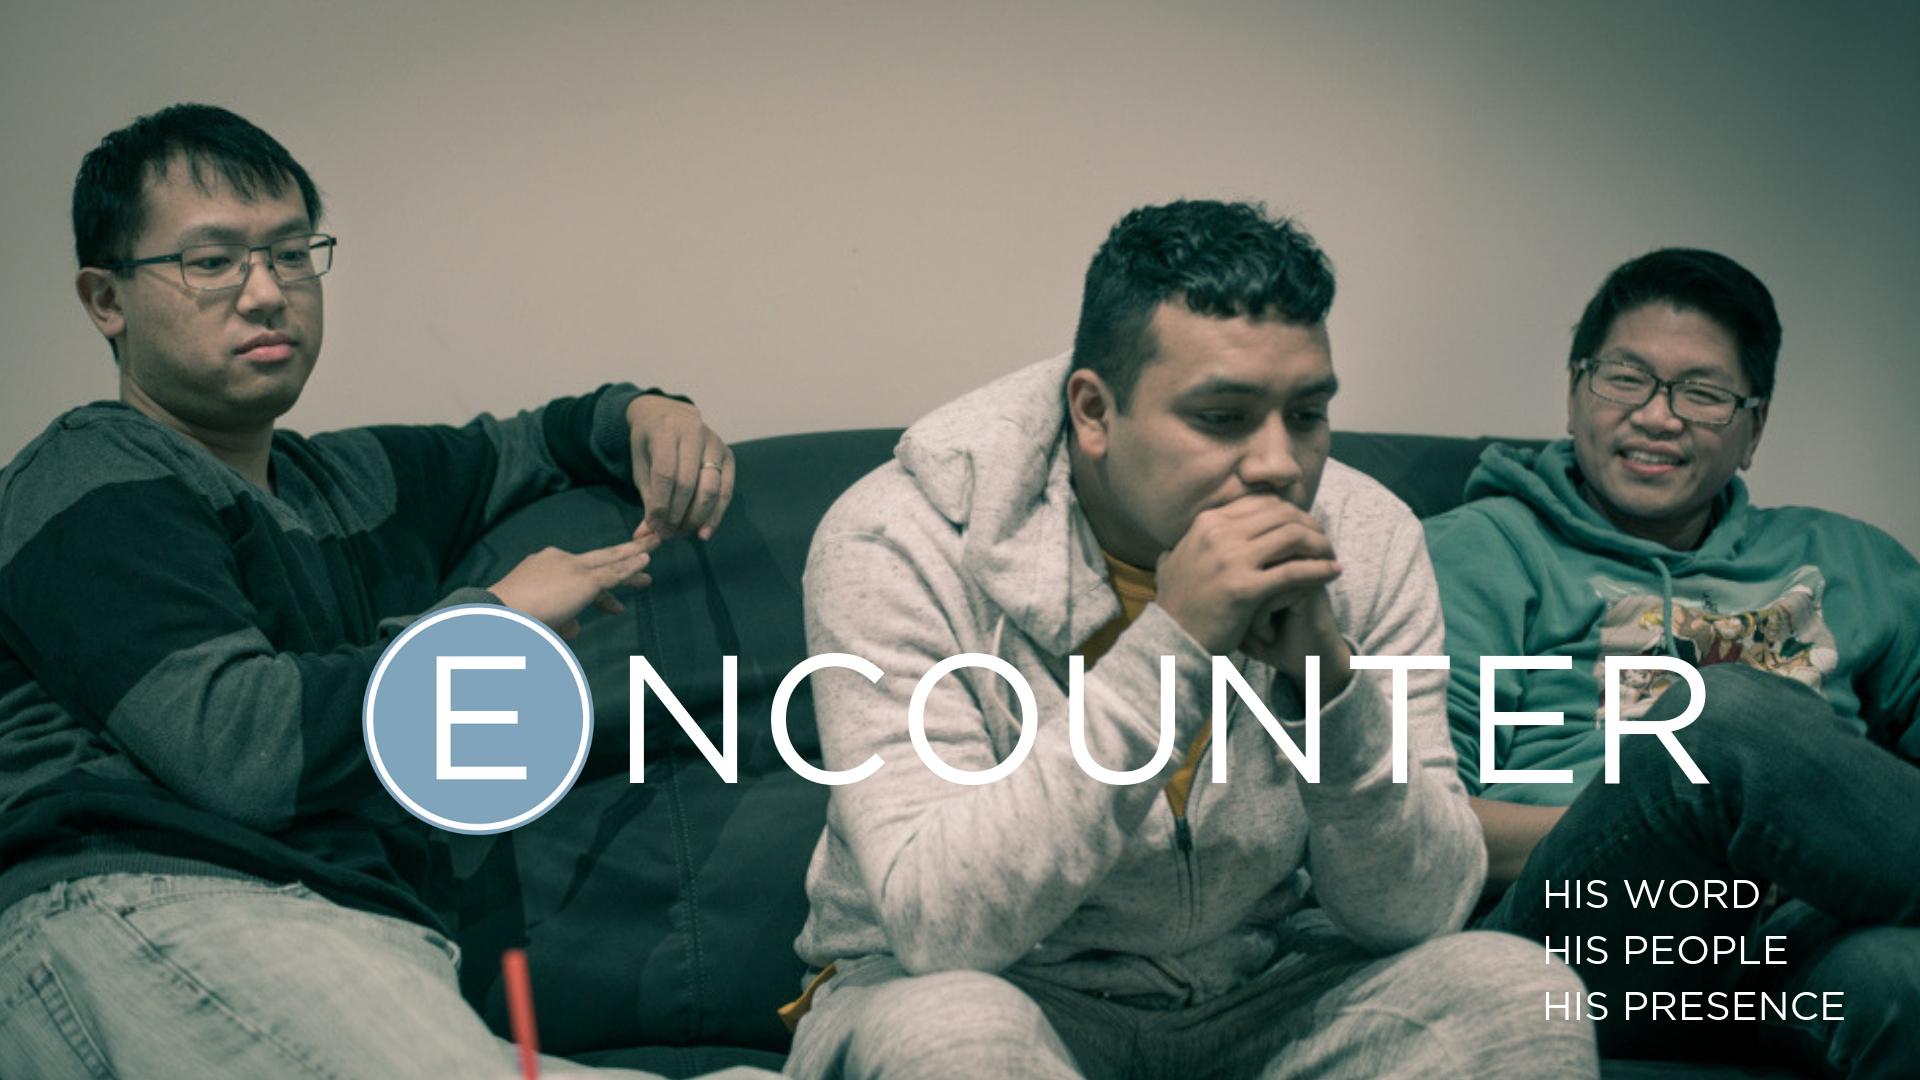 What is Encounter? Encounter is where we meet God's people, God's word and God's presence. We go deeper by discussing and applying the messages from the previous Sunday. We also spend time seeking God's Presence. If you would like to know more please contact  Ron@envisionli.org